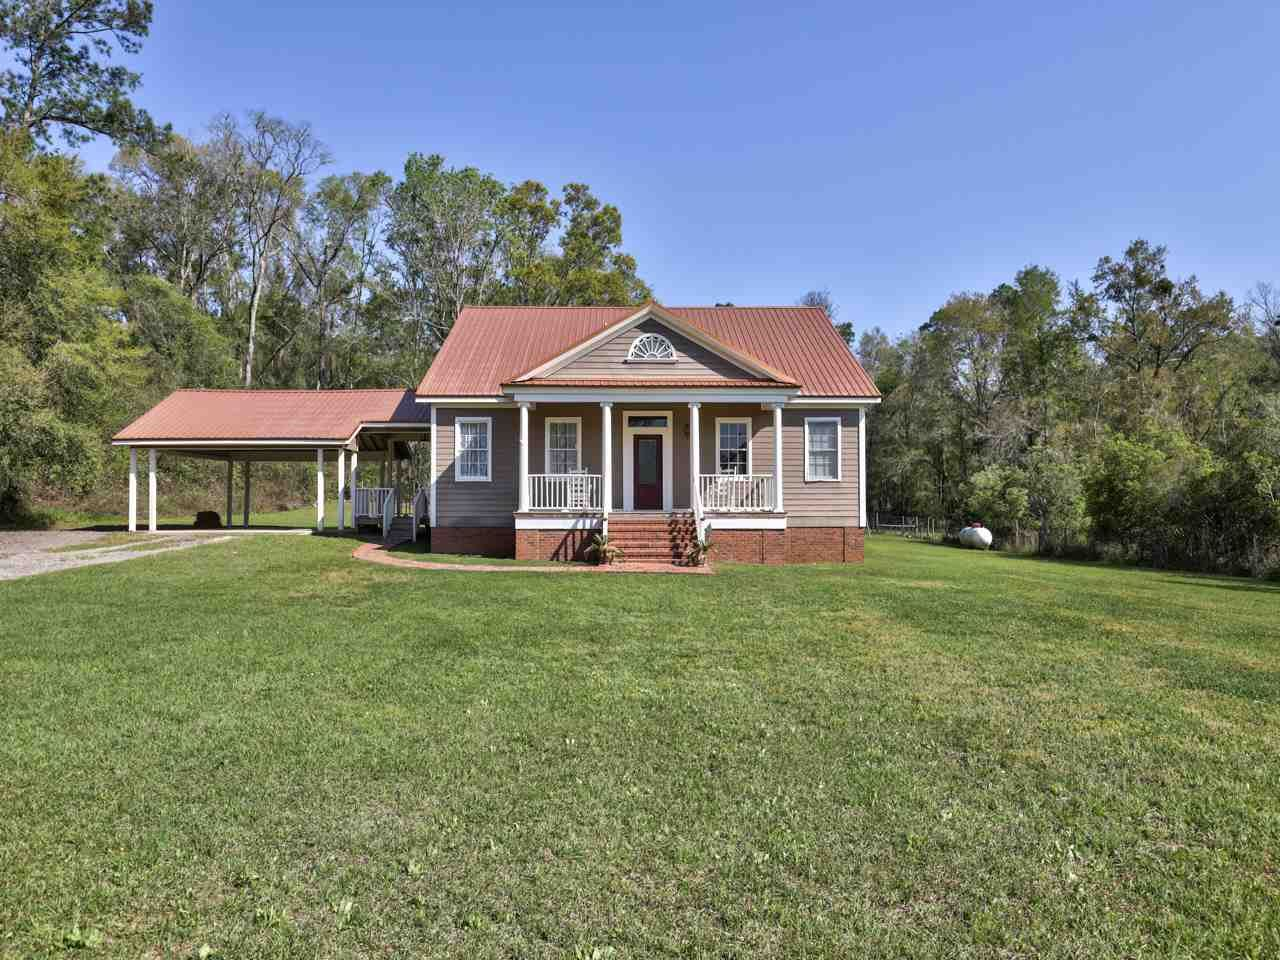 Photo of 4785 Chaires Cross Road, TALLAHASSEE, FL 32317 (MLS # 317219)